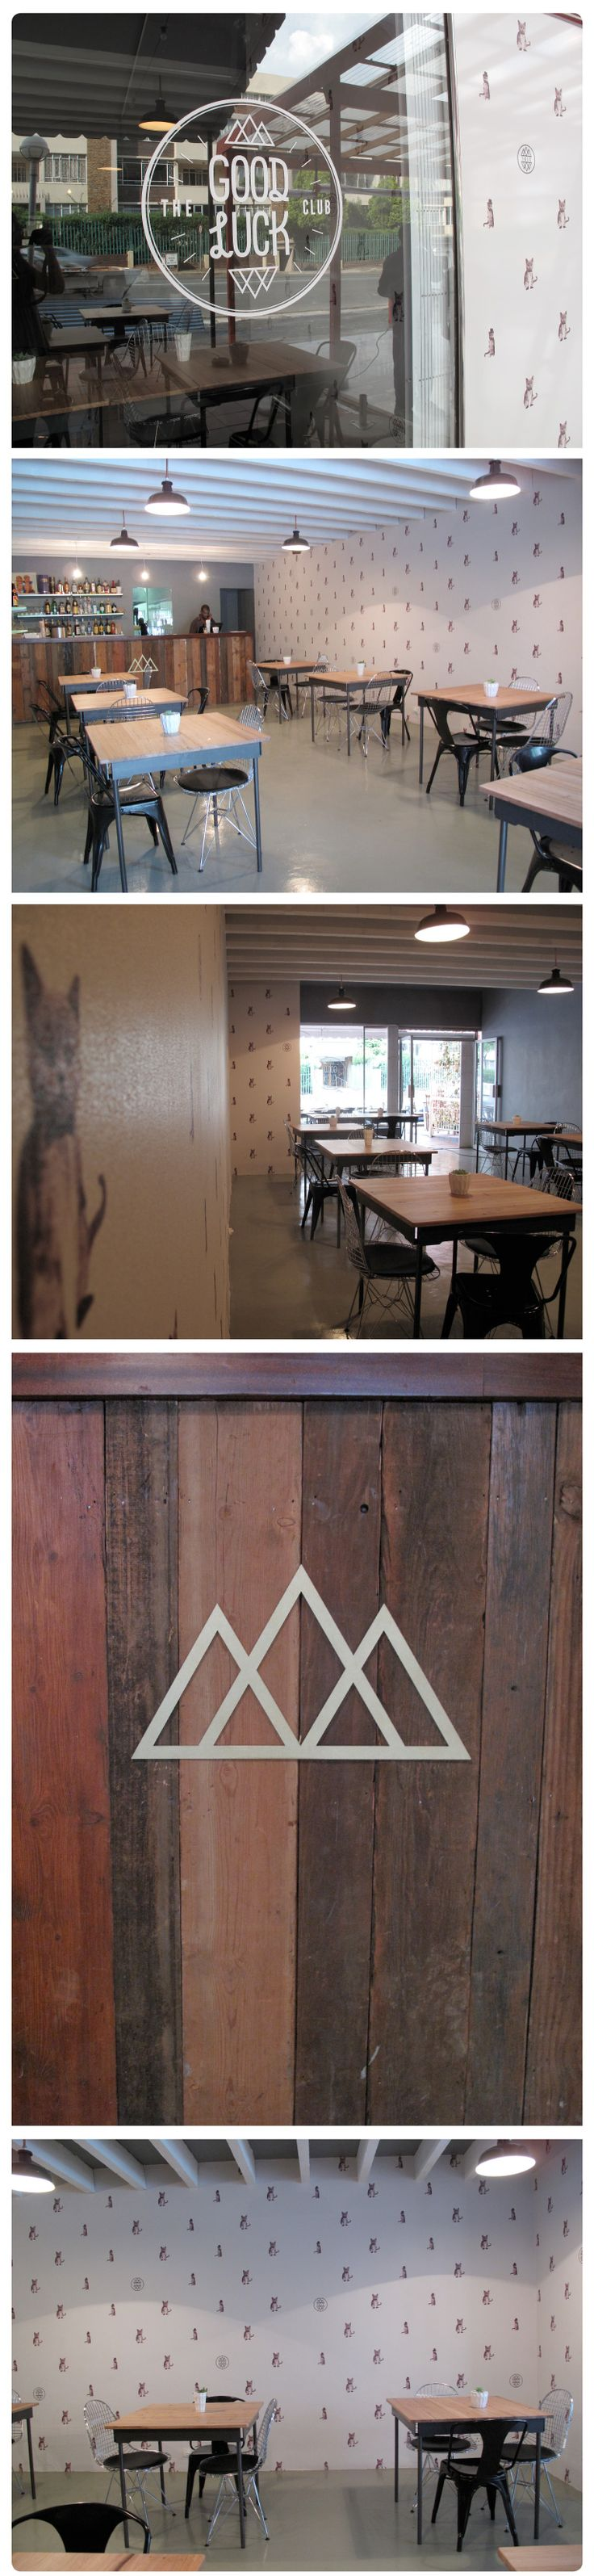 The Good Luck Club noodle bar